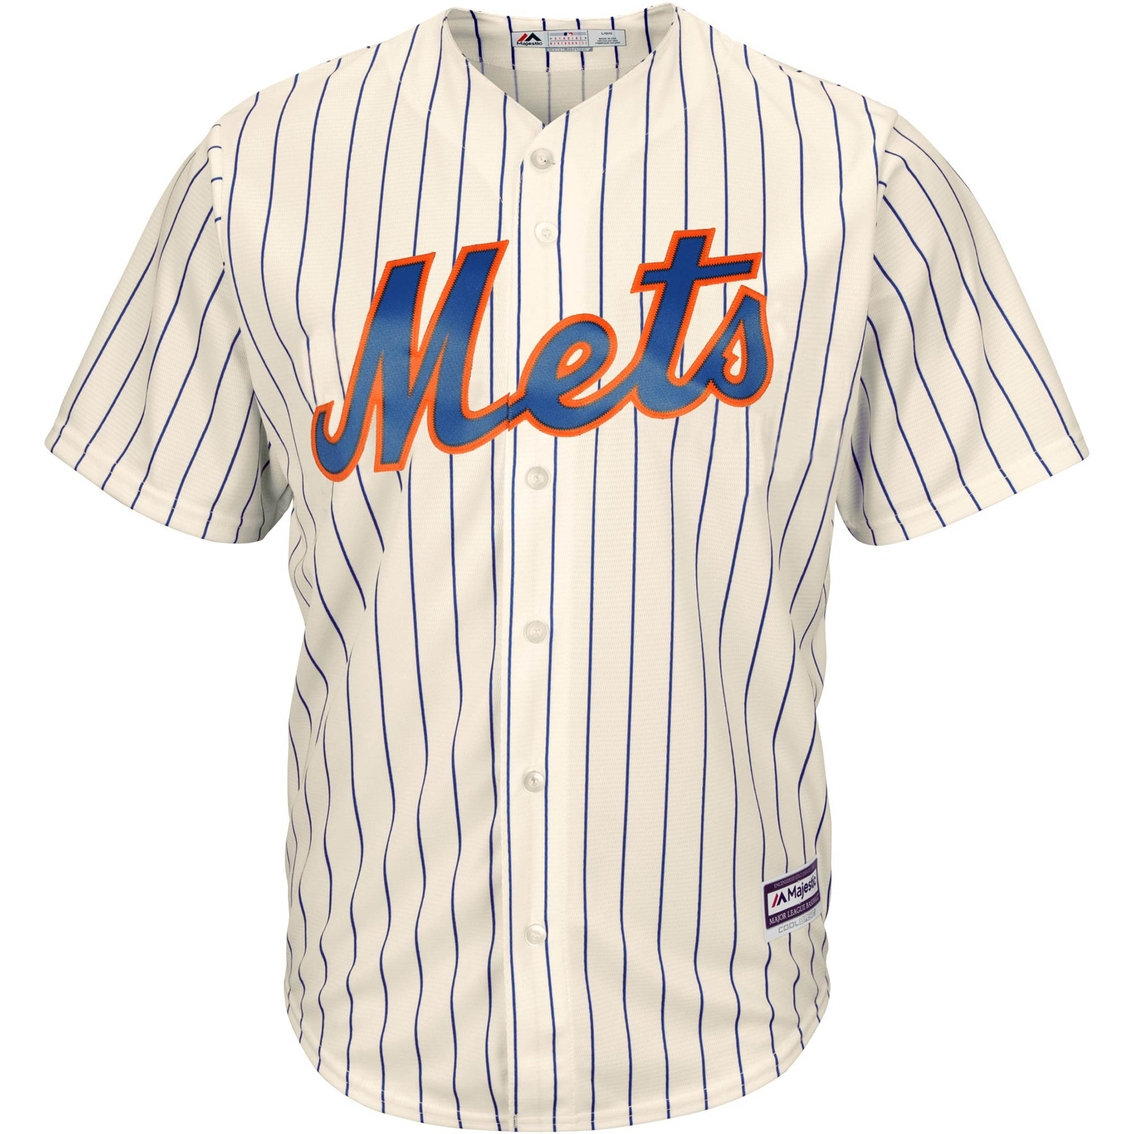 c0fce5e3 Majestic Mlb New York Mets Home Replica Jersey | Shirts | Apparel ...